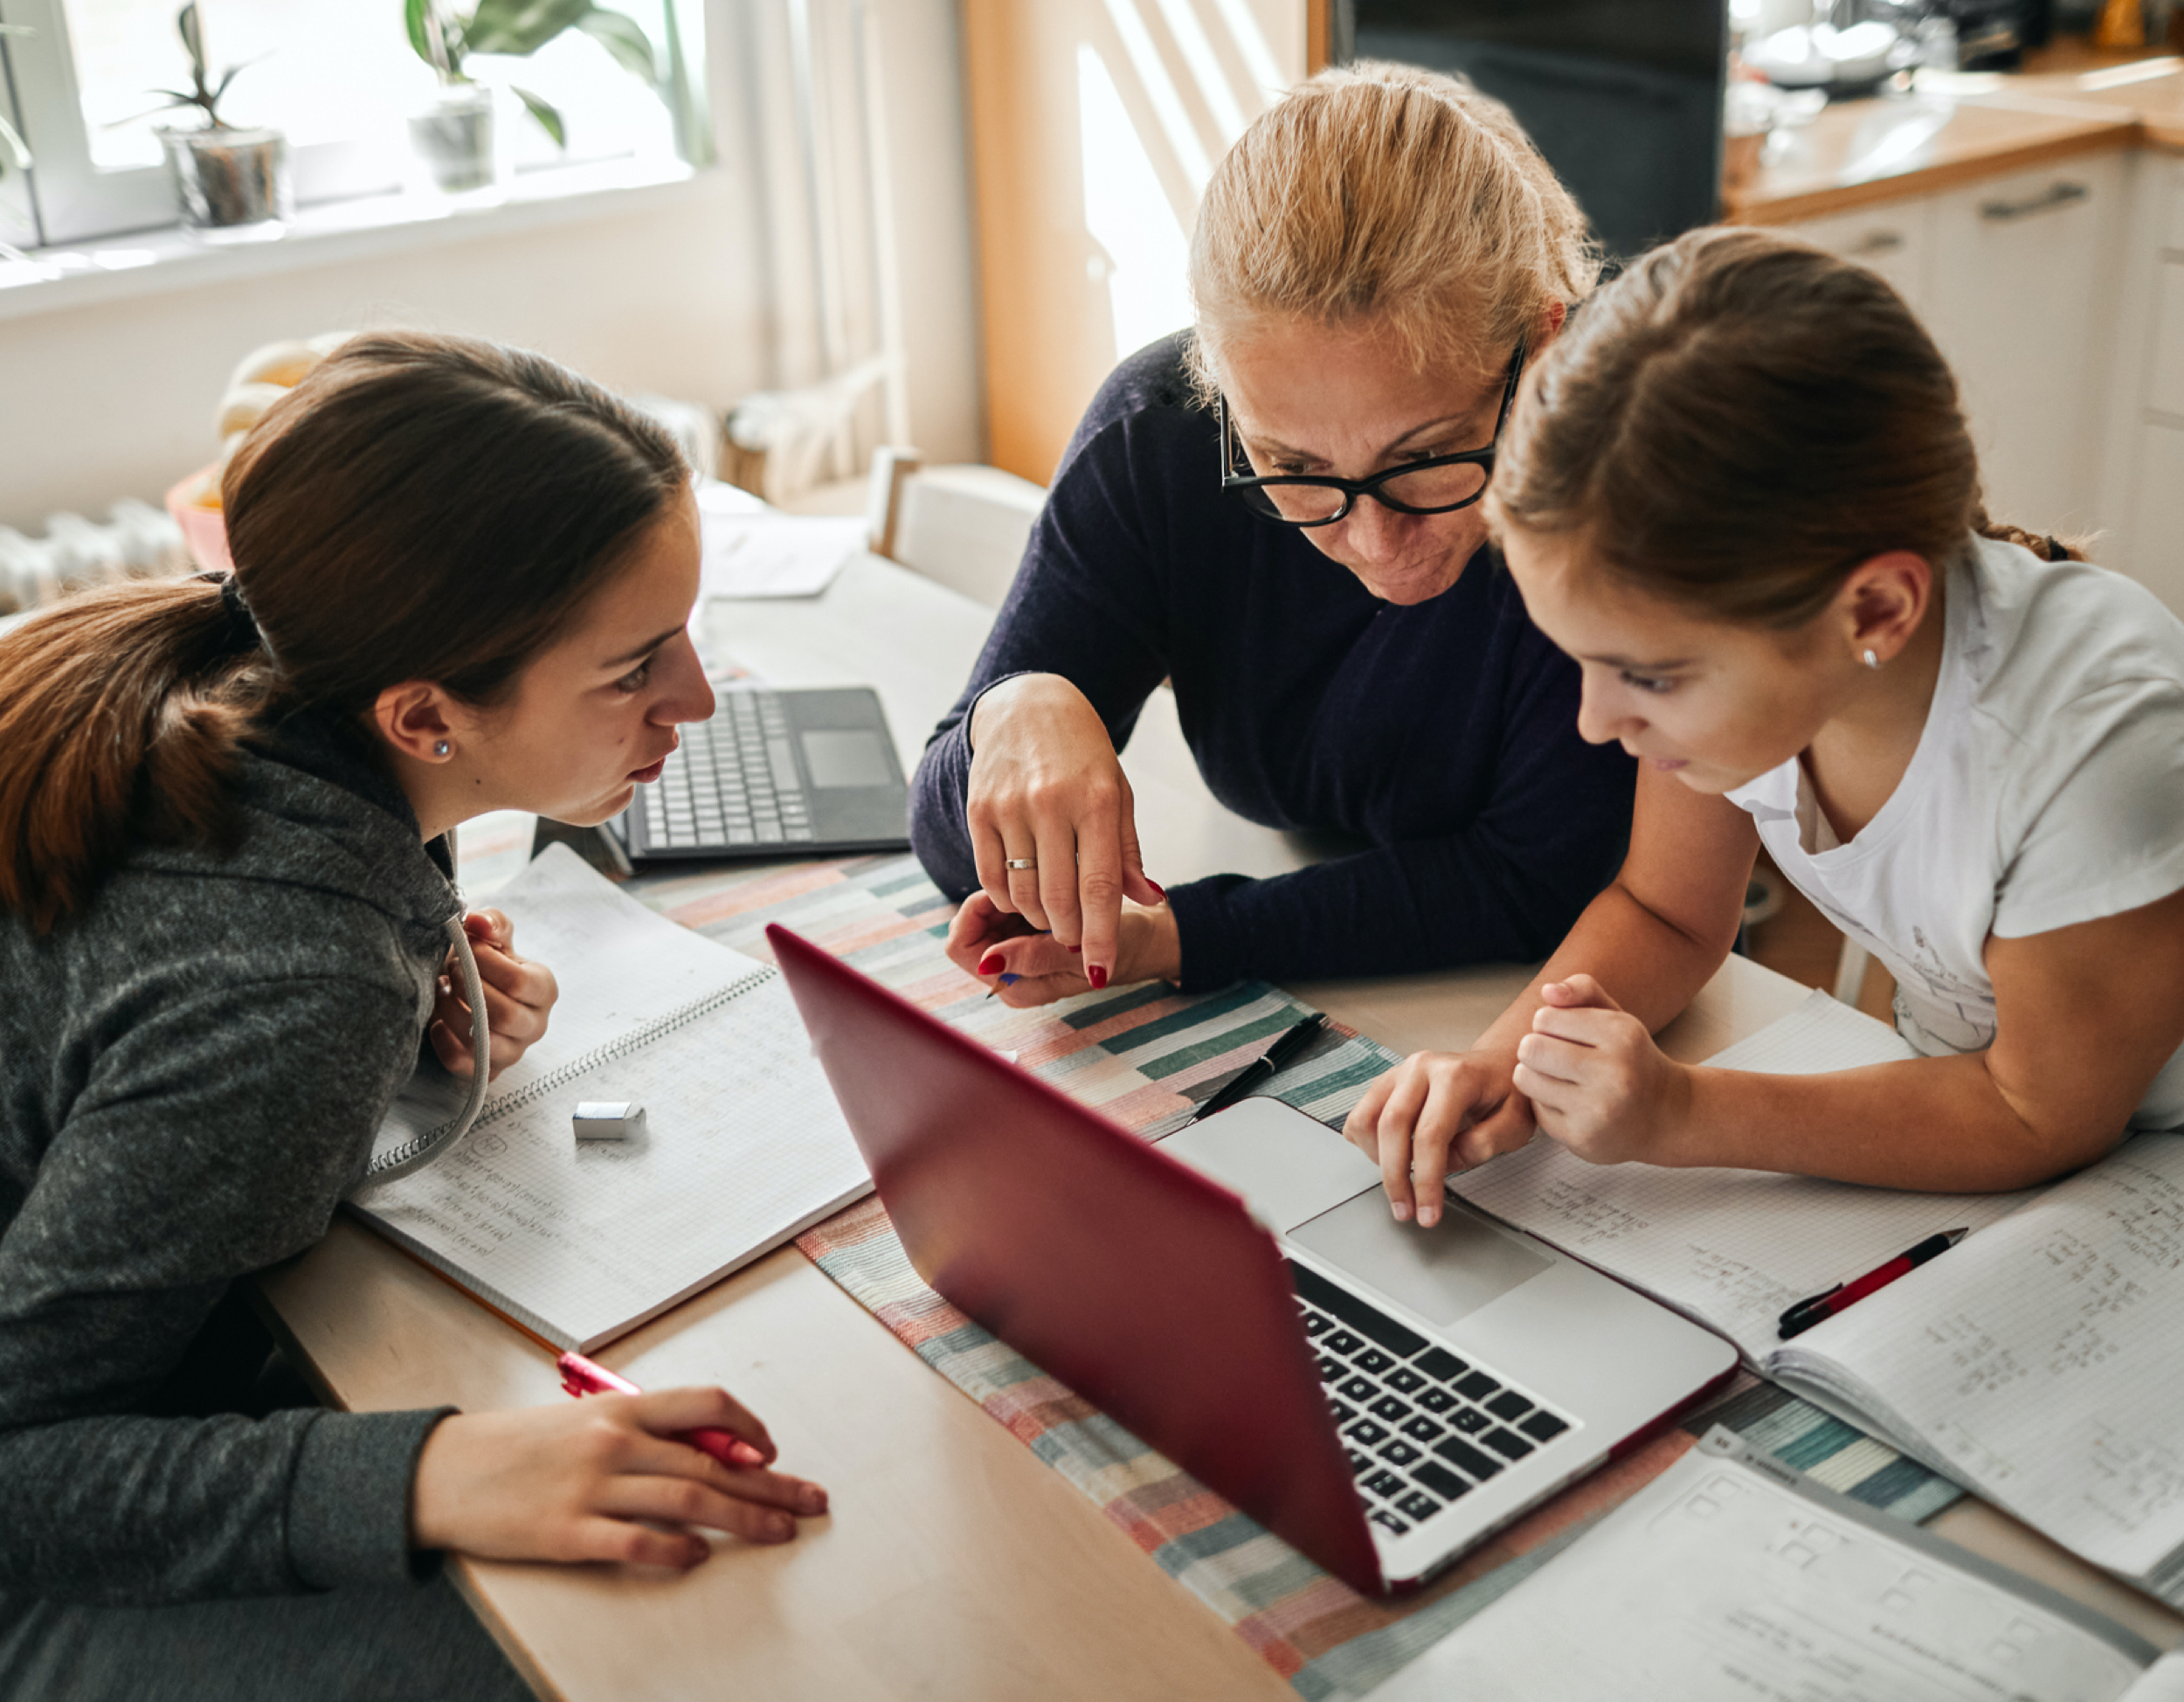 Mother and daughters work on homework together at table, with multiple tech devices.